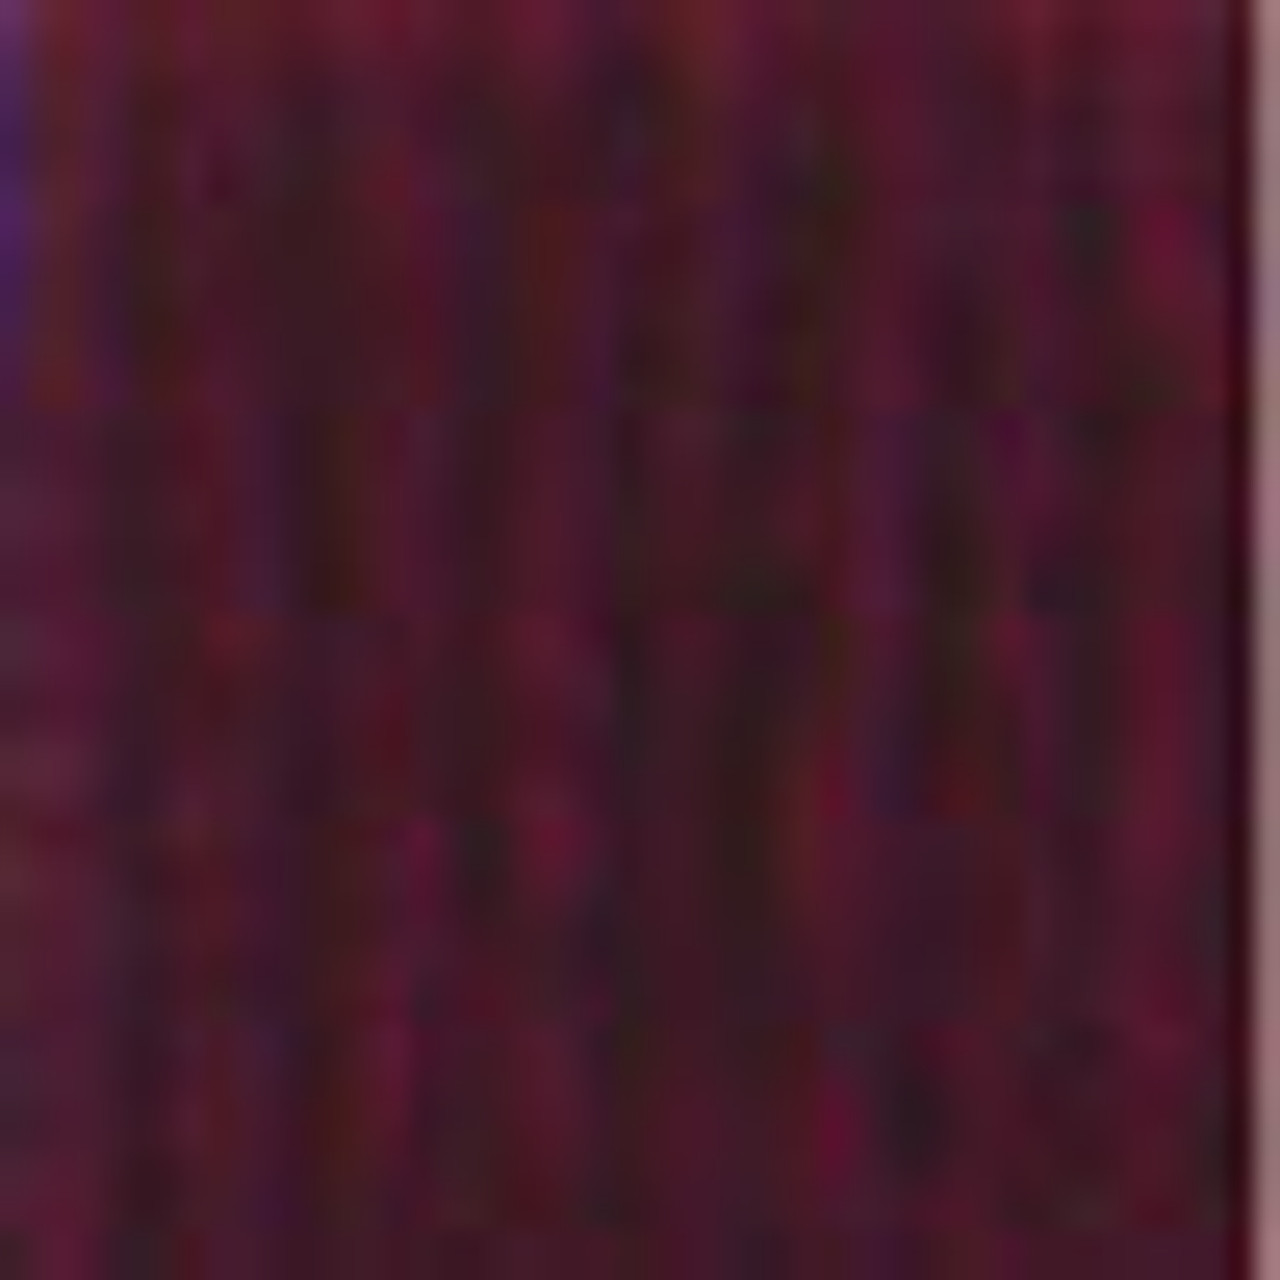 DMC # 154 Very Dark Grape Floss / Thread